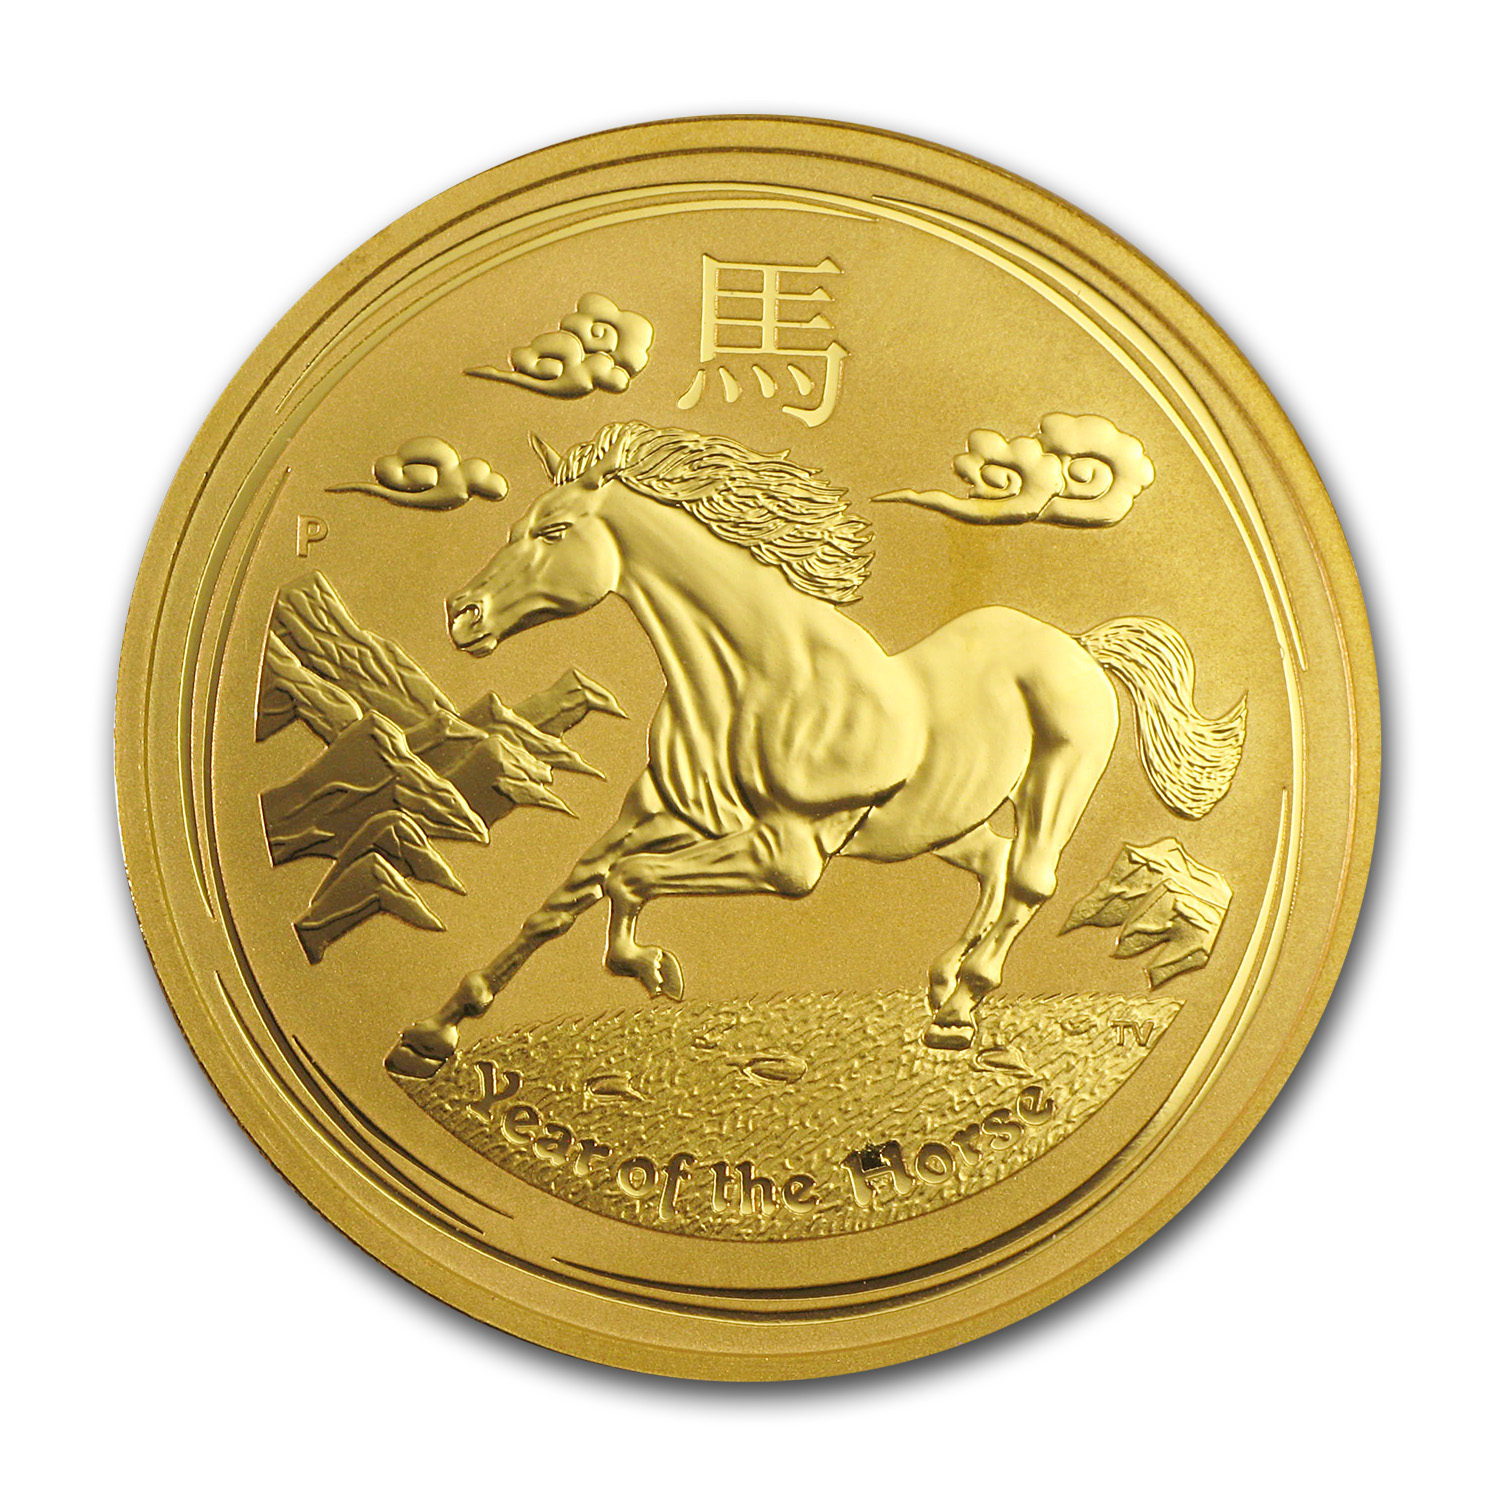 2014 Gold 1 oz Lunar Year of the Horse BU (Series II)